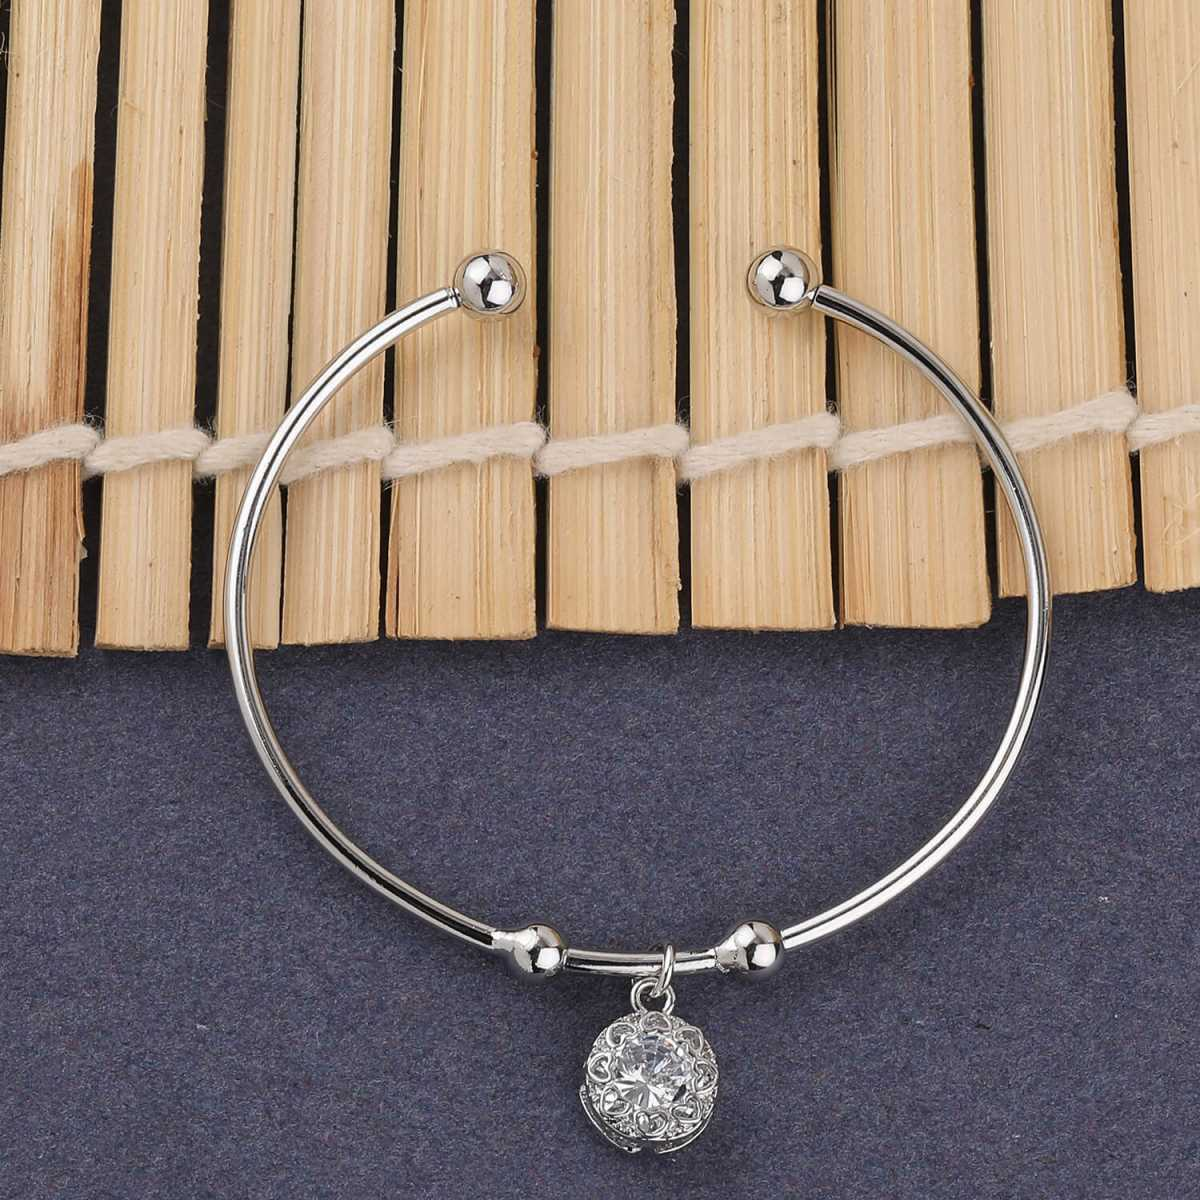 SILVER SHINE Party Wear Stylish Look Adjustable Bracelet With Diamond For Women Girls